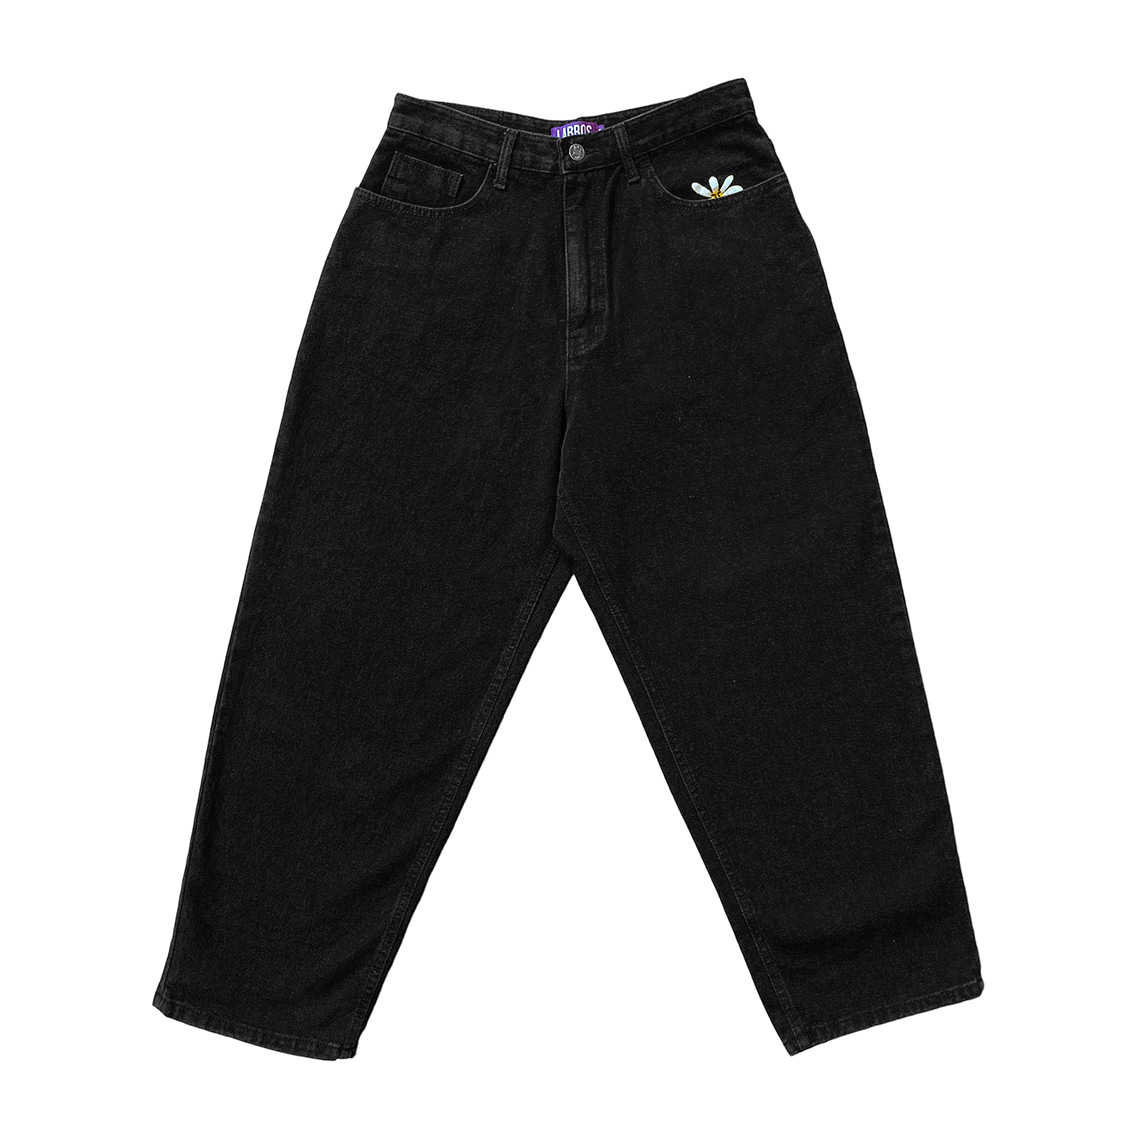 Smart Daisy Jeans (Black)